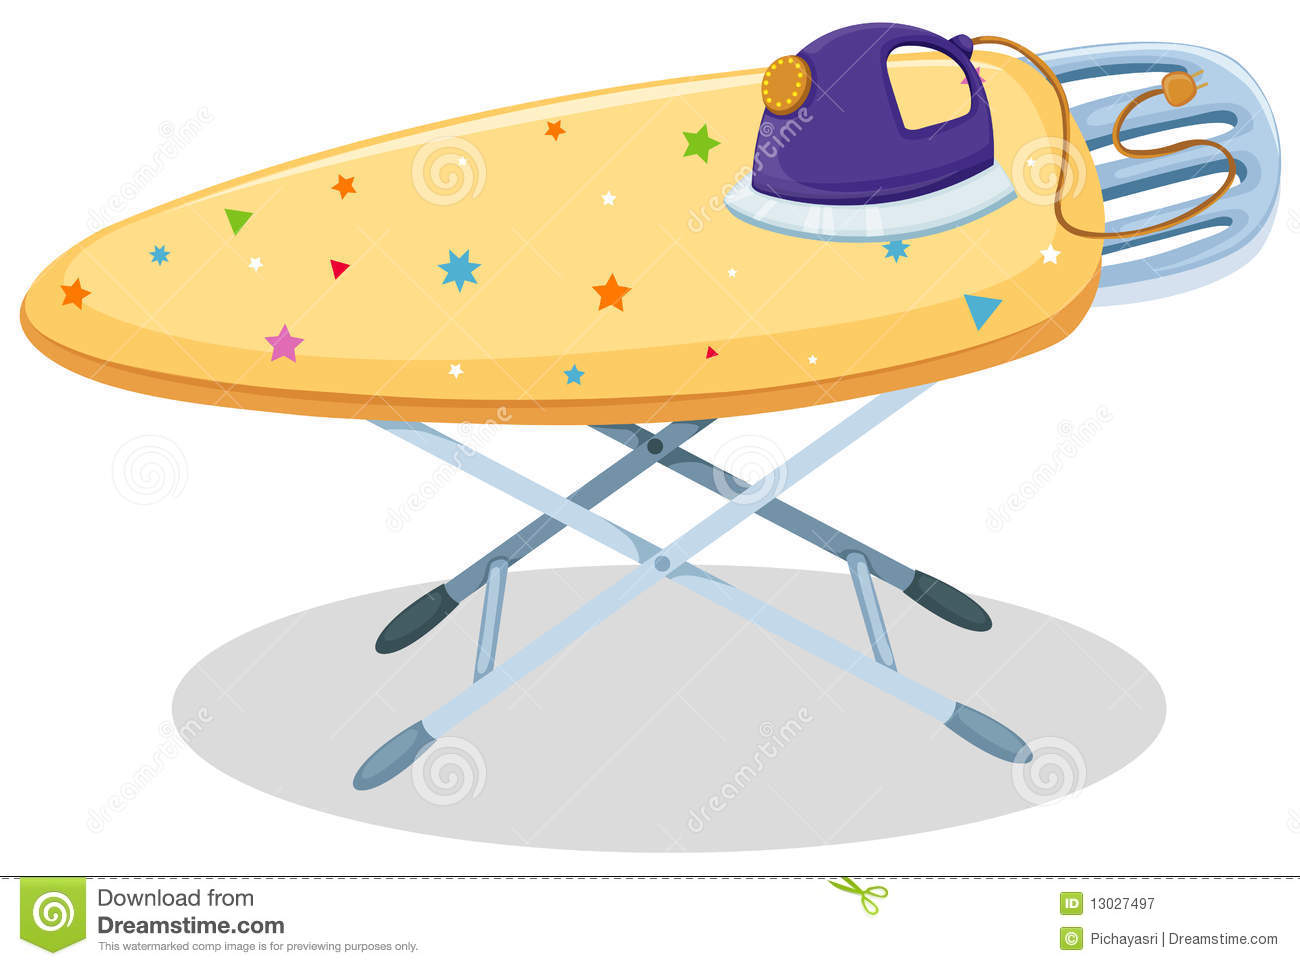 Iron and Ironing Board Clip Art